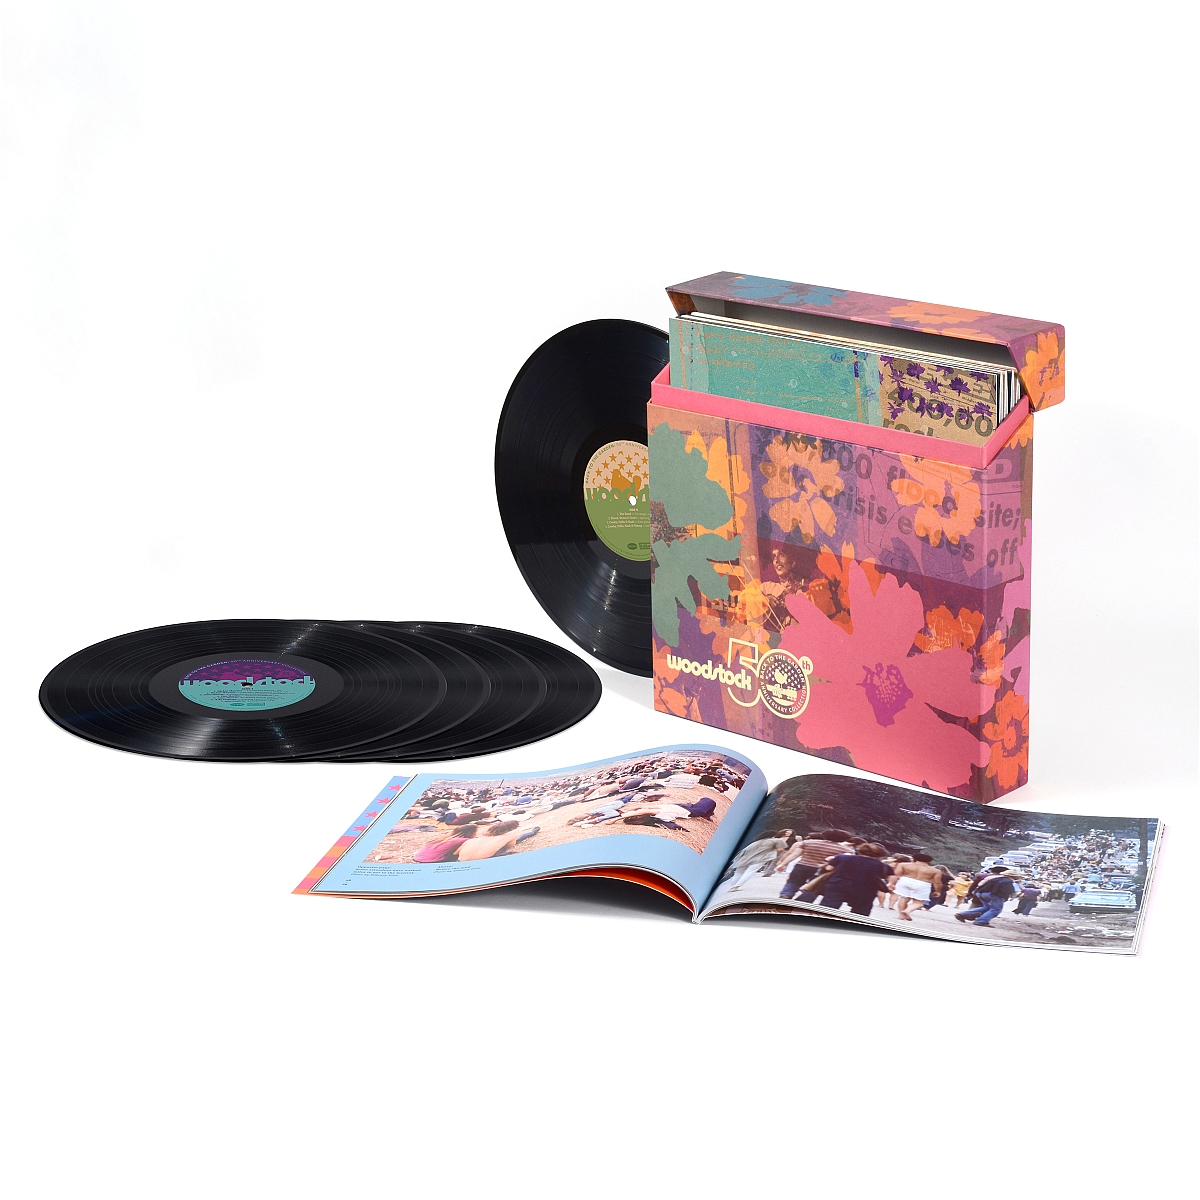 Woodstock - Back To The Garden: 50th Anniversary Collection (5 LP Set)